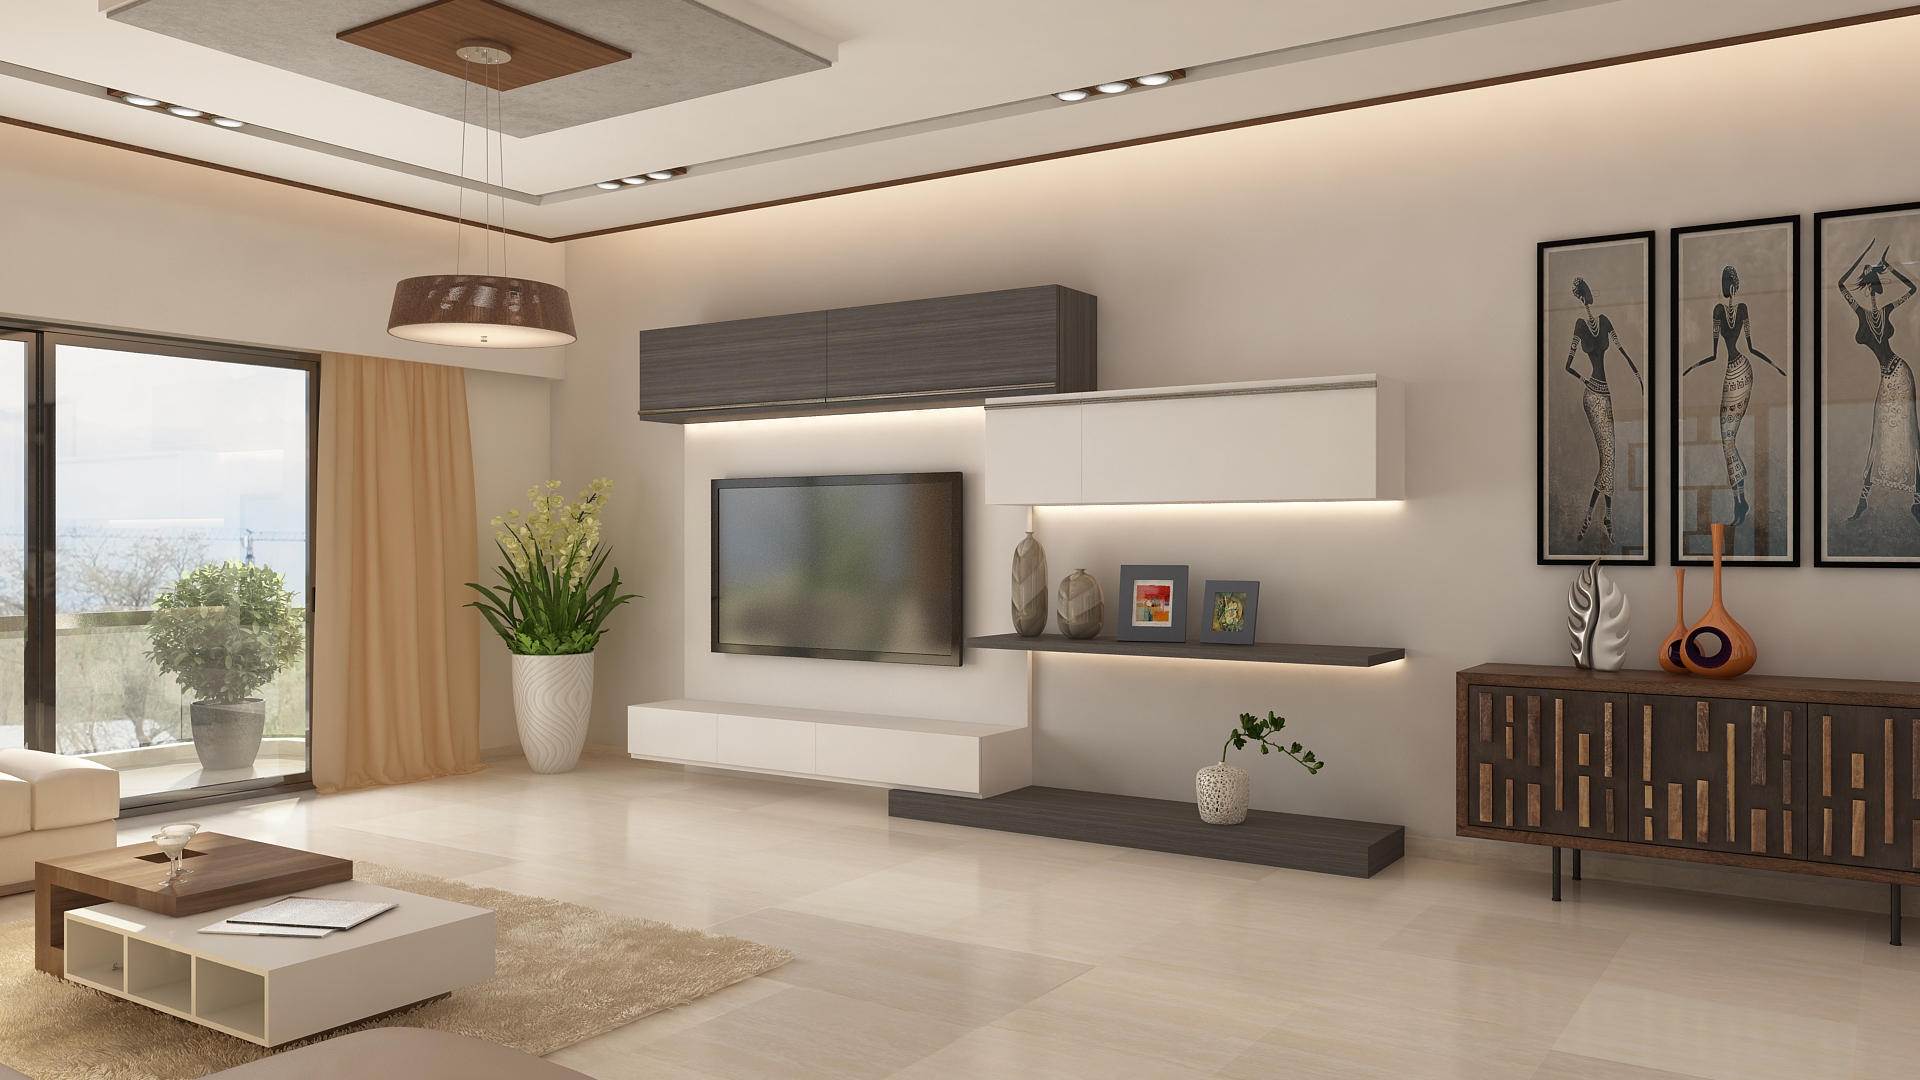 Ghar360 portfolio 2 bhk apartment interior design in jp - Wall units for living room mumbai ...